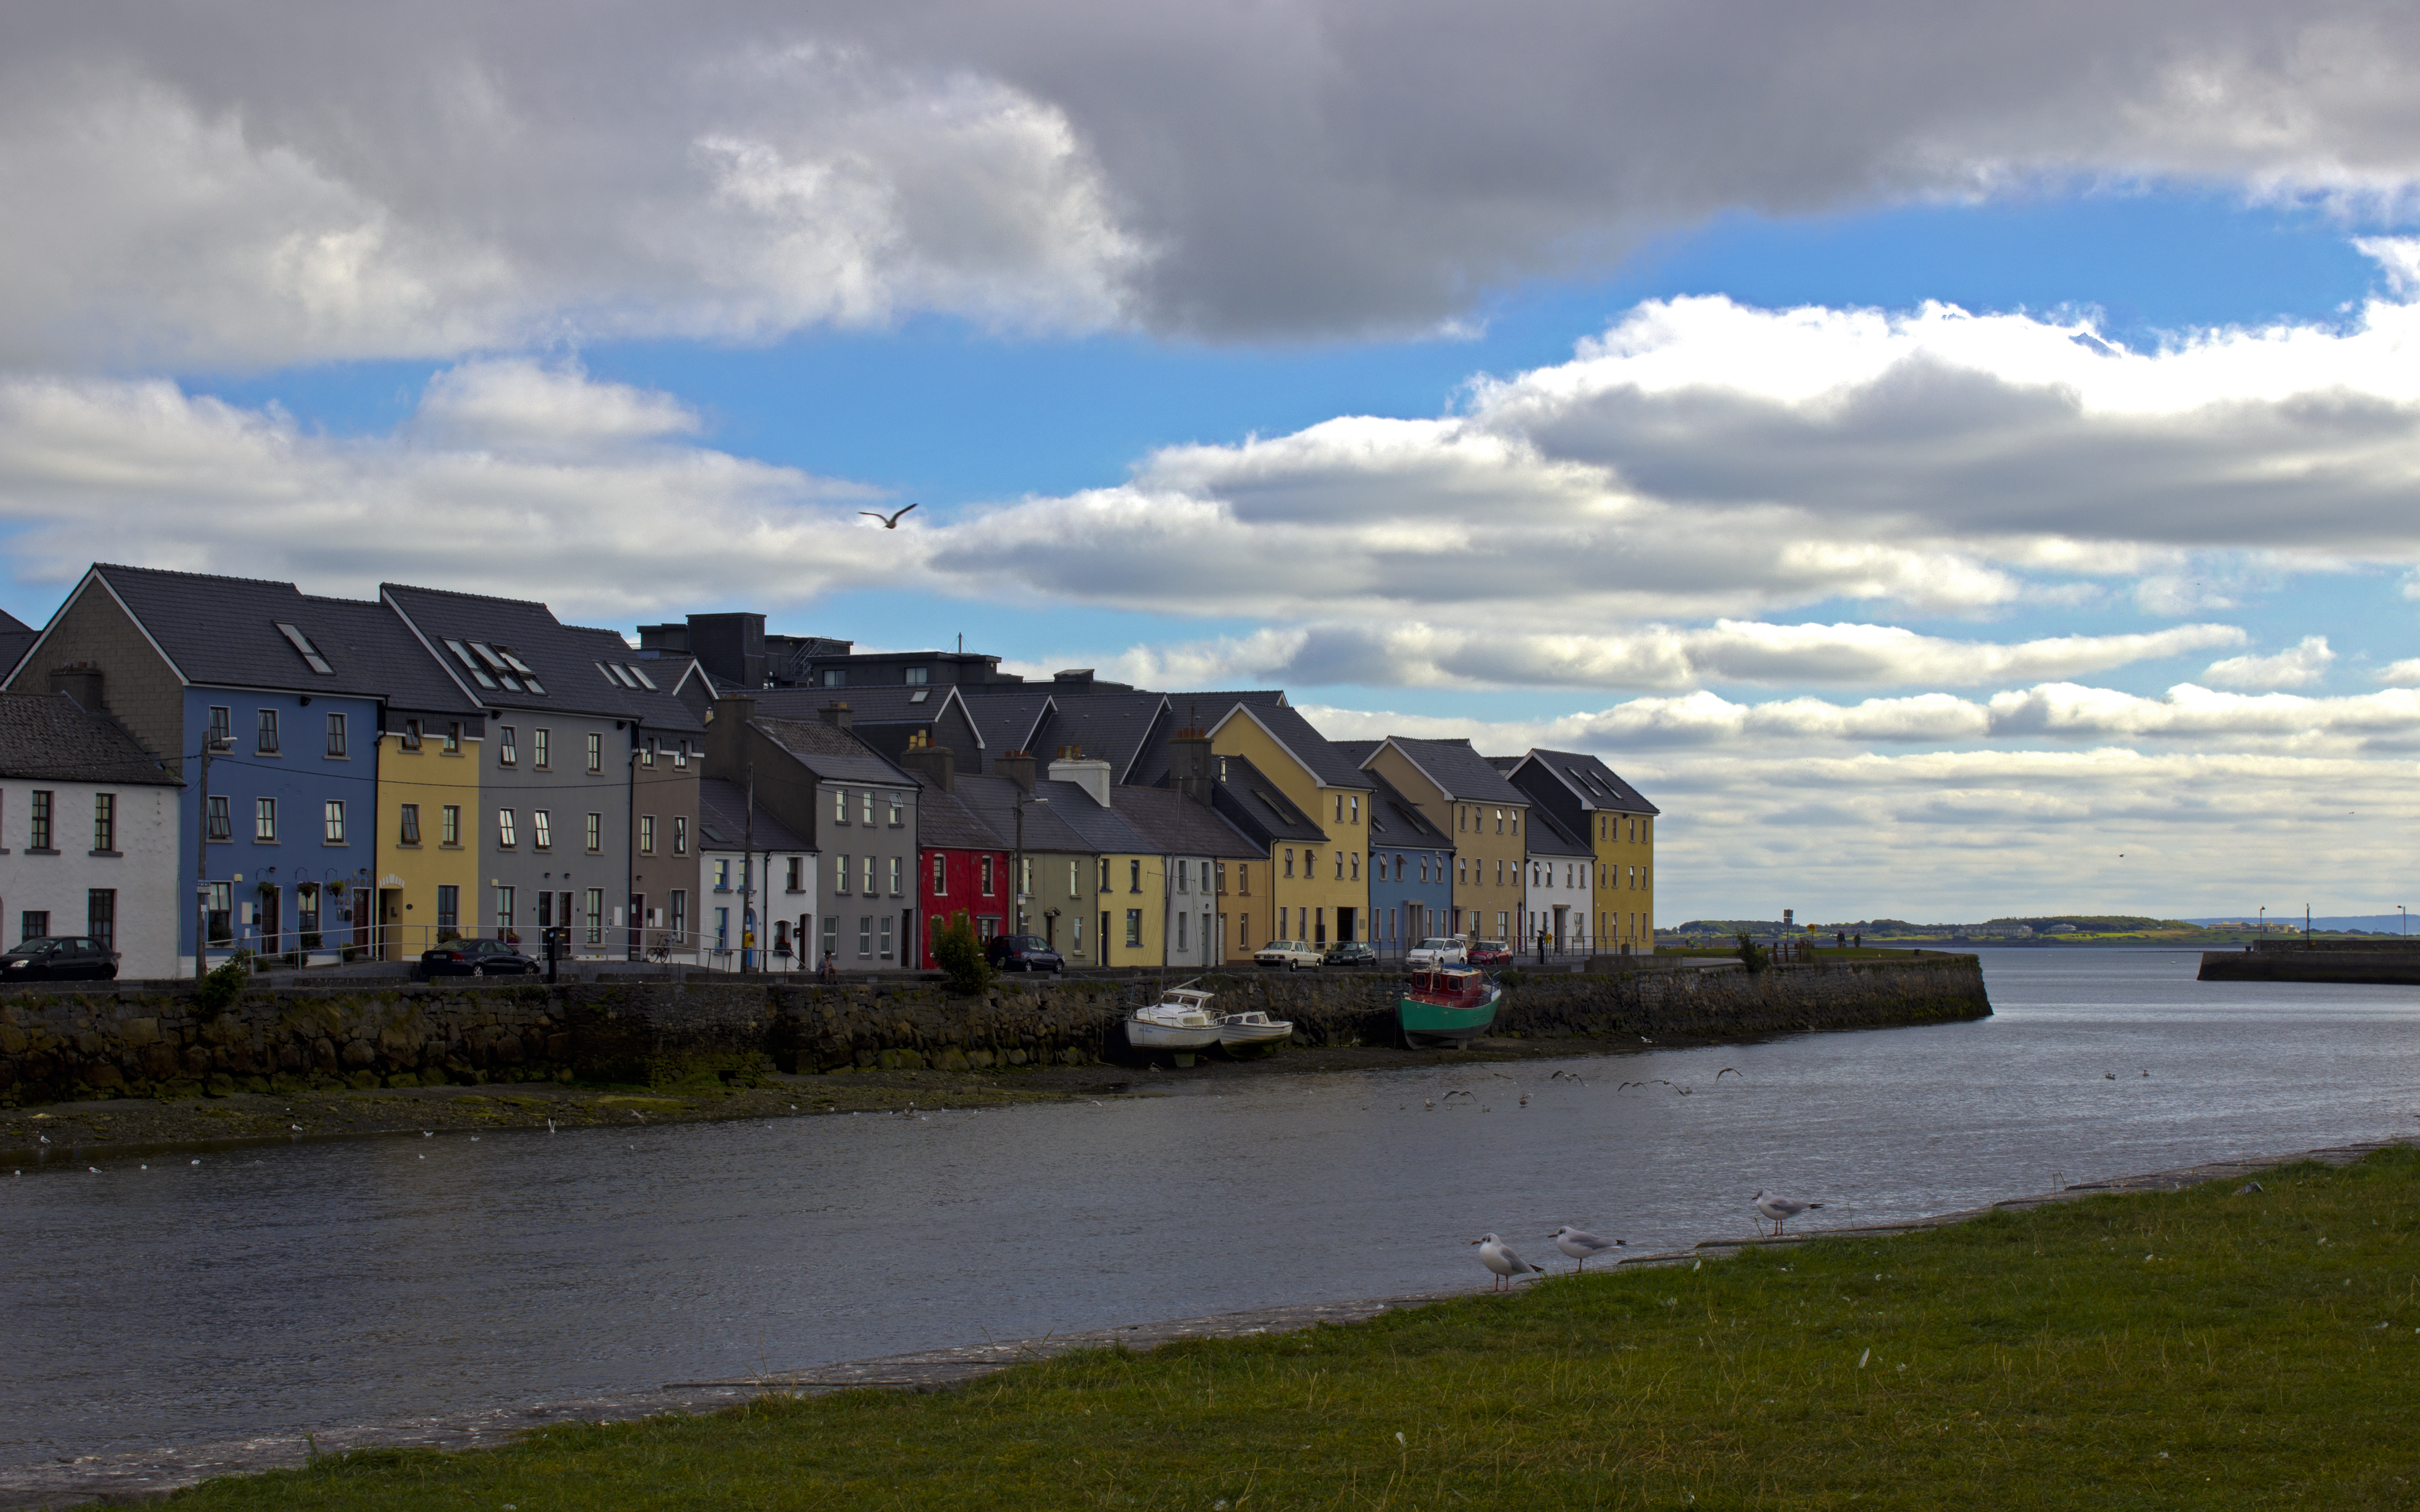 Galway Ireland  city pictures gallery : Saturday in town: Galway, Ireland | A pinch of adventure